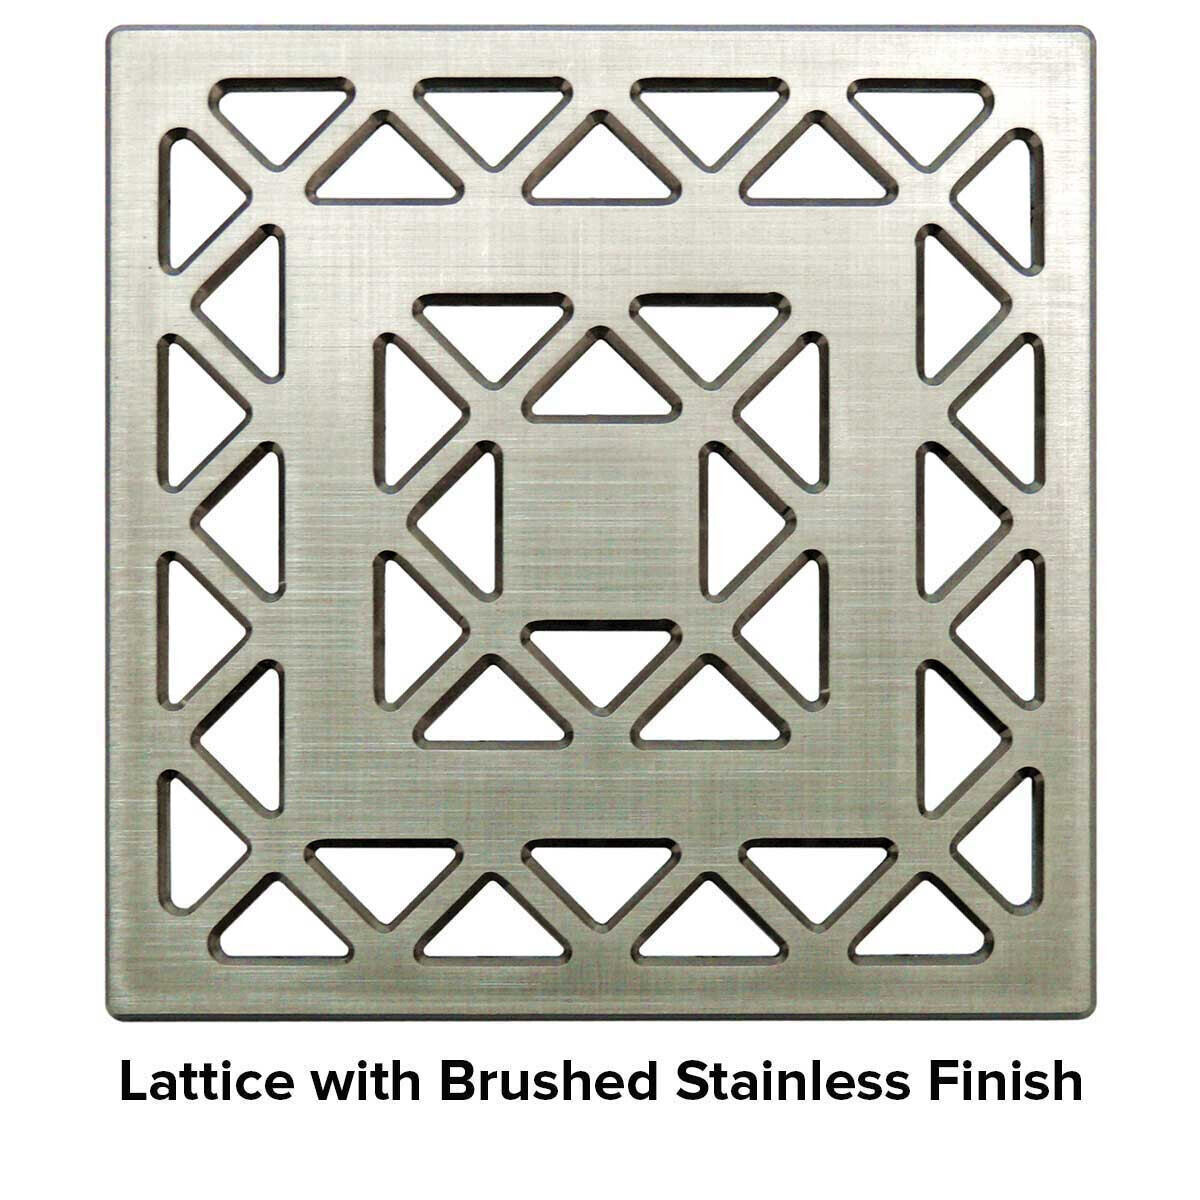 USG 4 inch Shower Grate Brushed SS Lattice